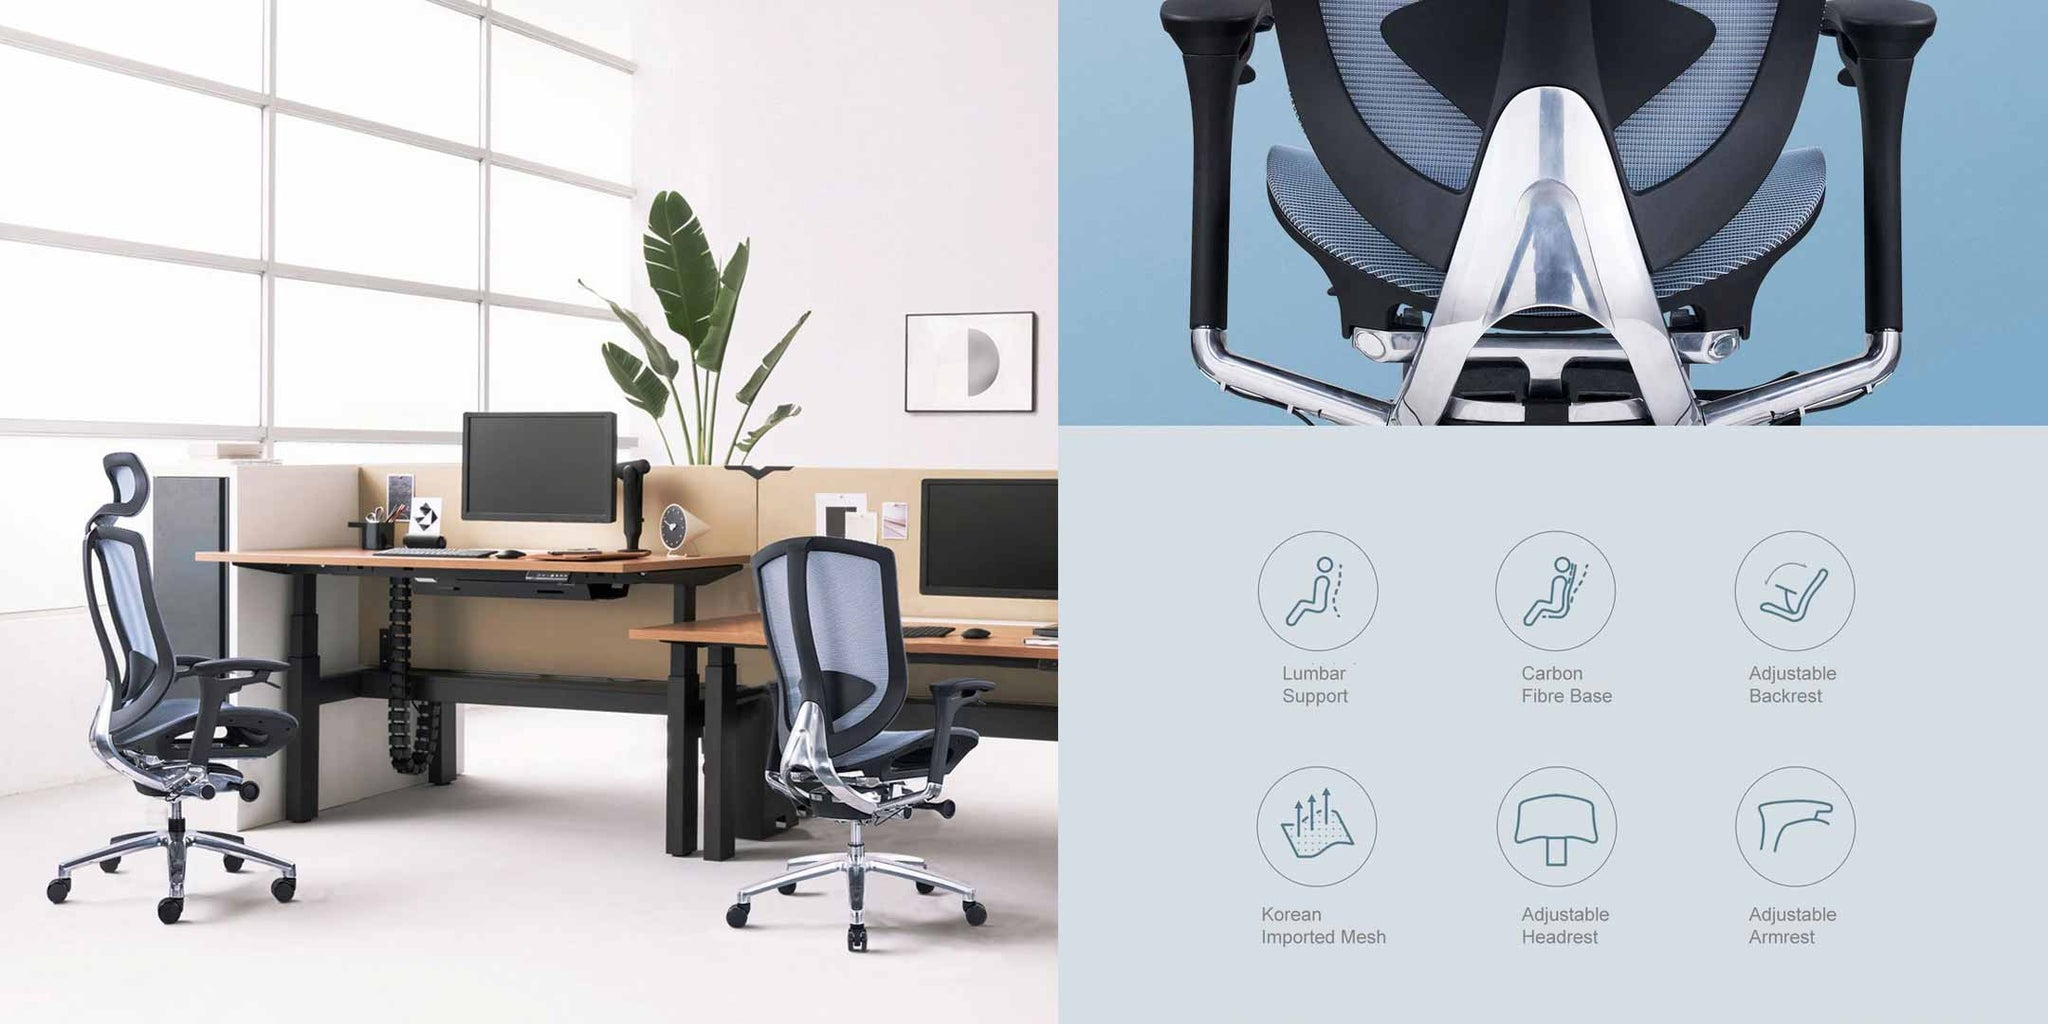 A Good Office Chair Supports You, Even When Your Posture is Poor